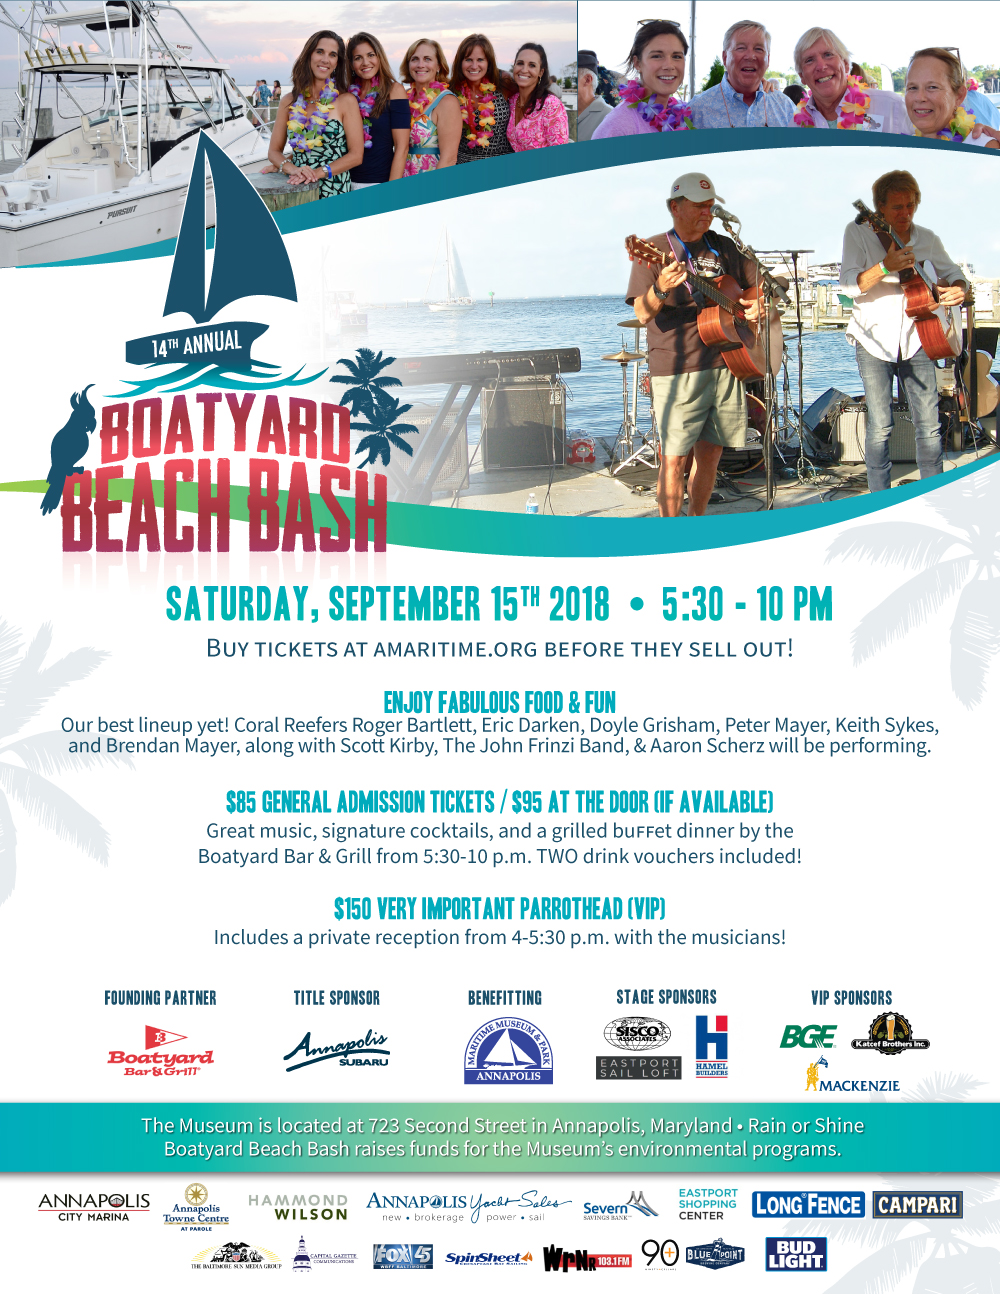 Boatyard Beach Bash 2018